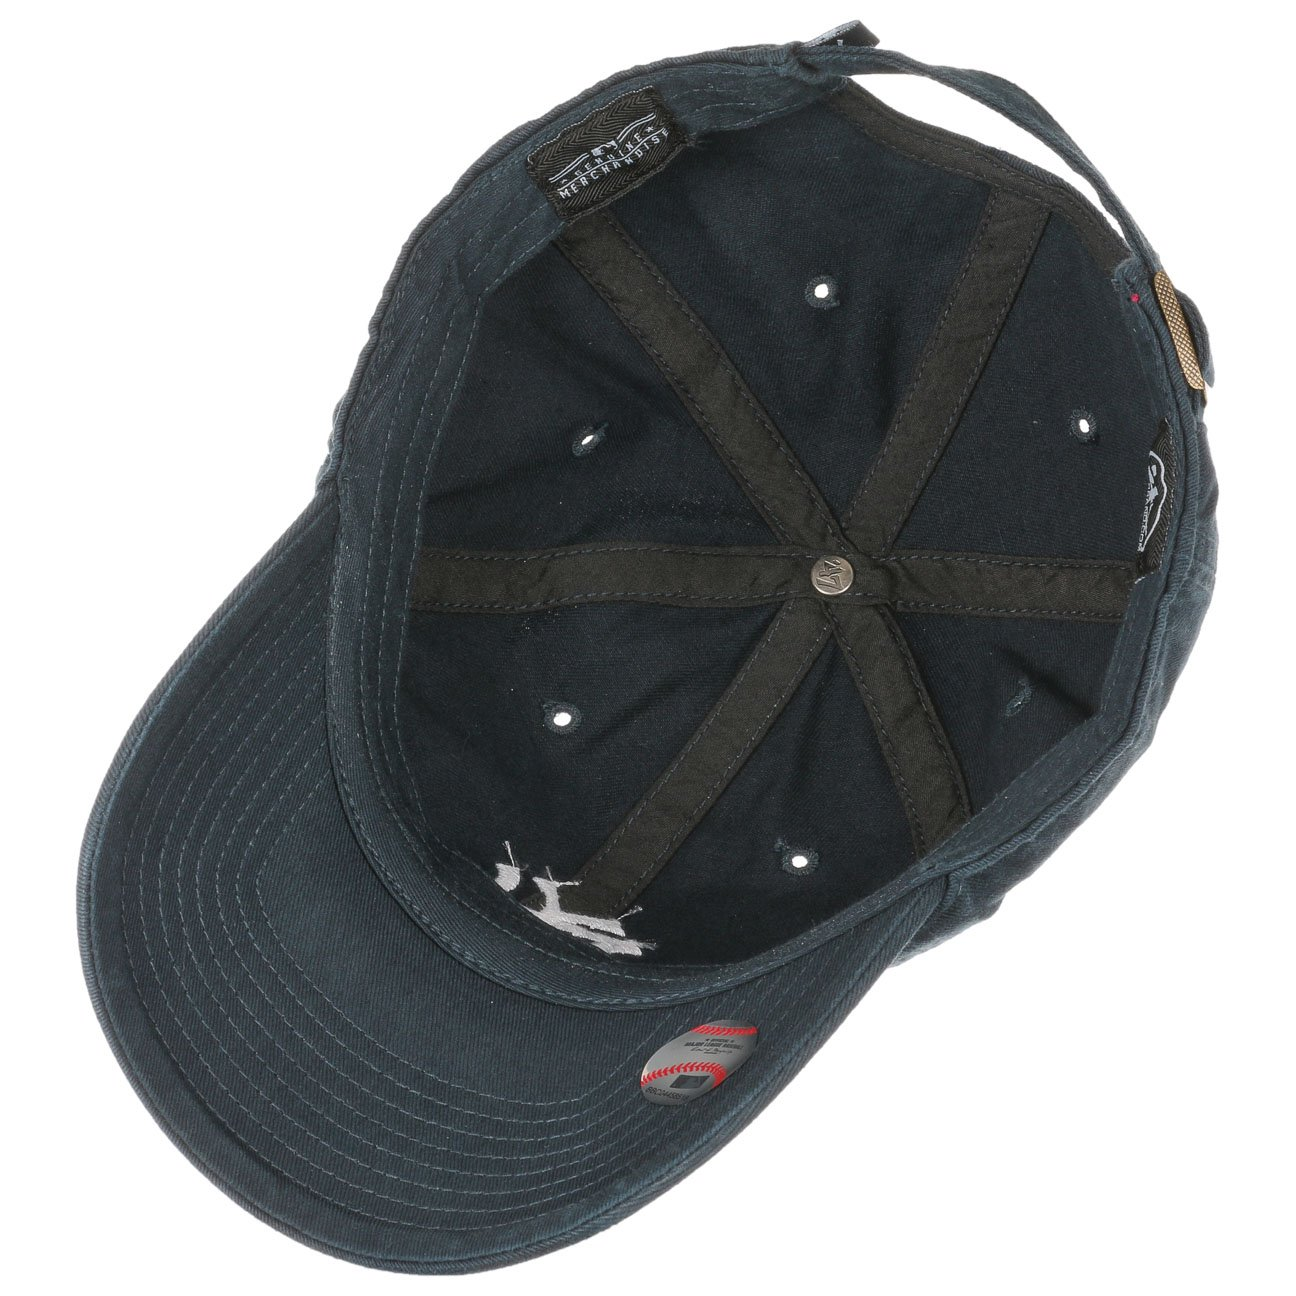 brand new 7585a 0717e Amazon.com   47 MLB New York Yankees Brand Clean Up Adjustable Cap, One  Size, Black  Clothing